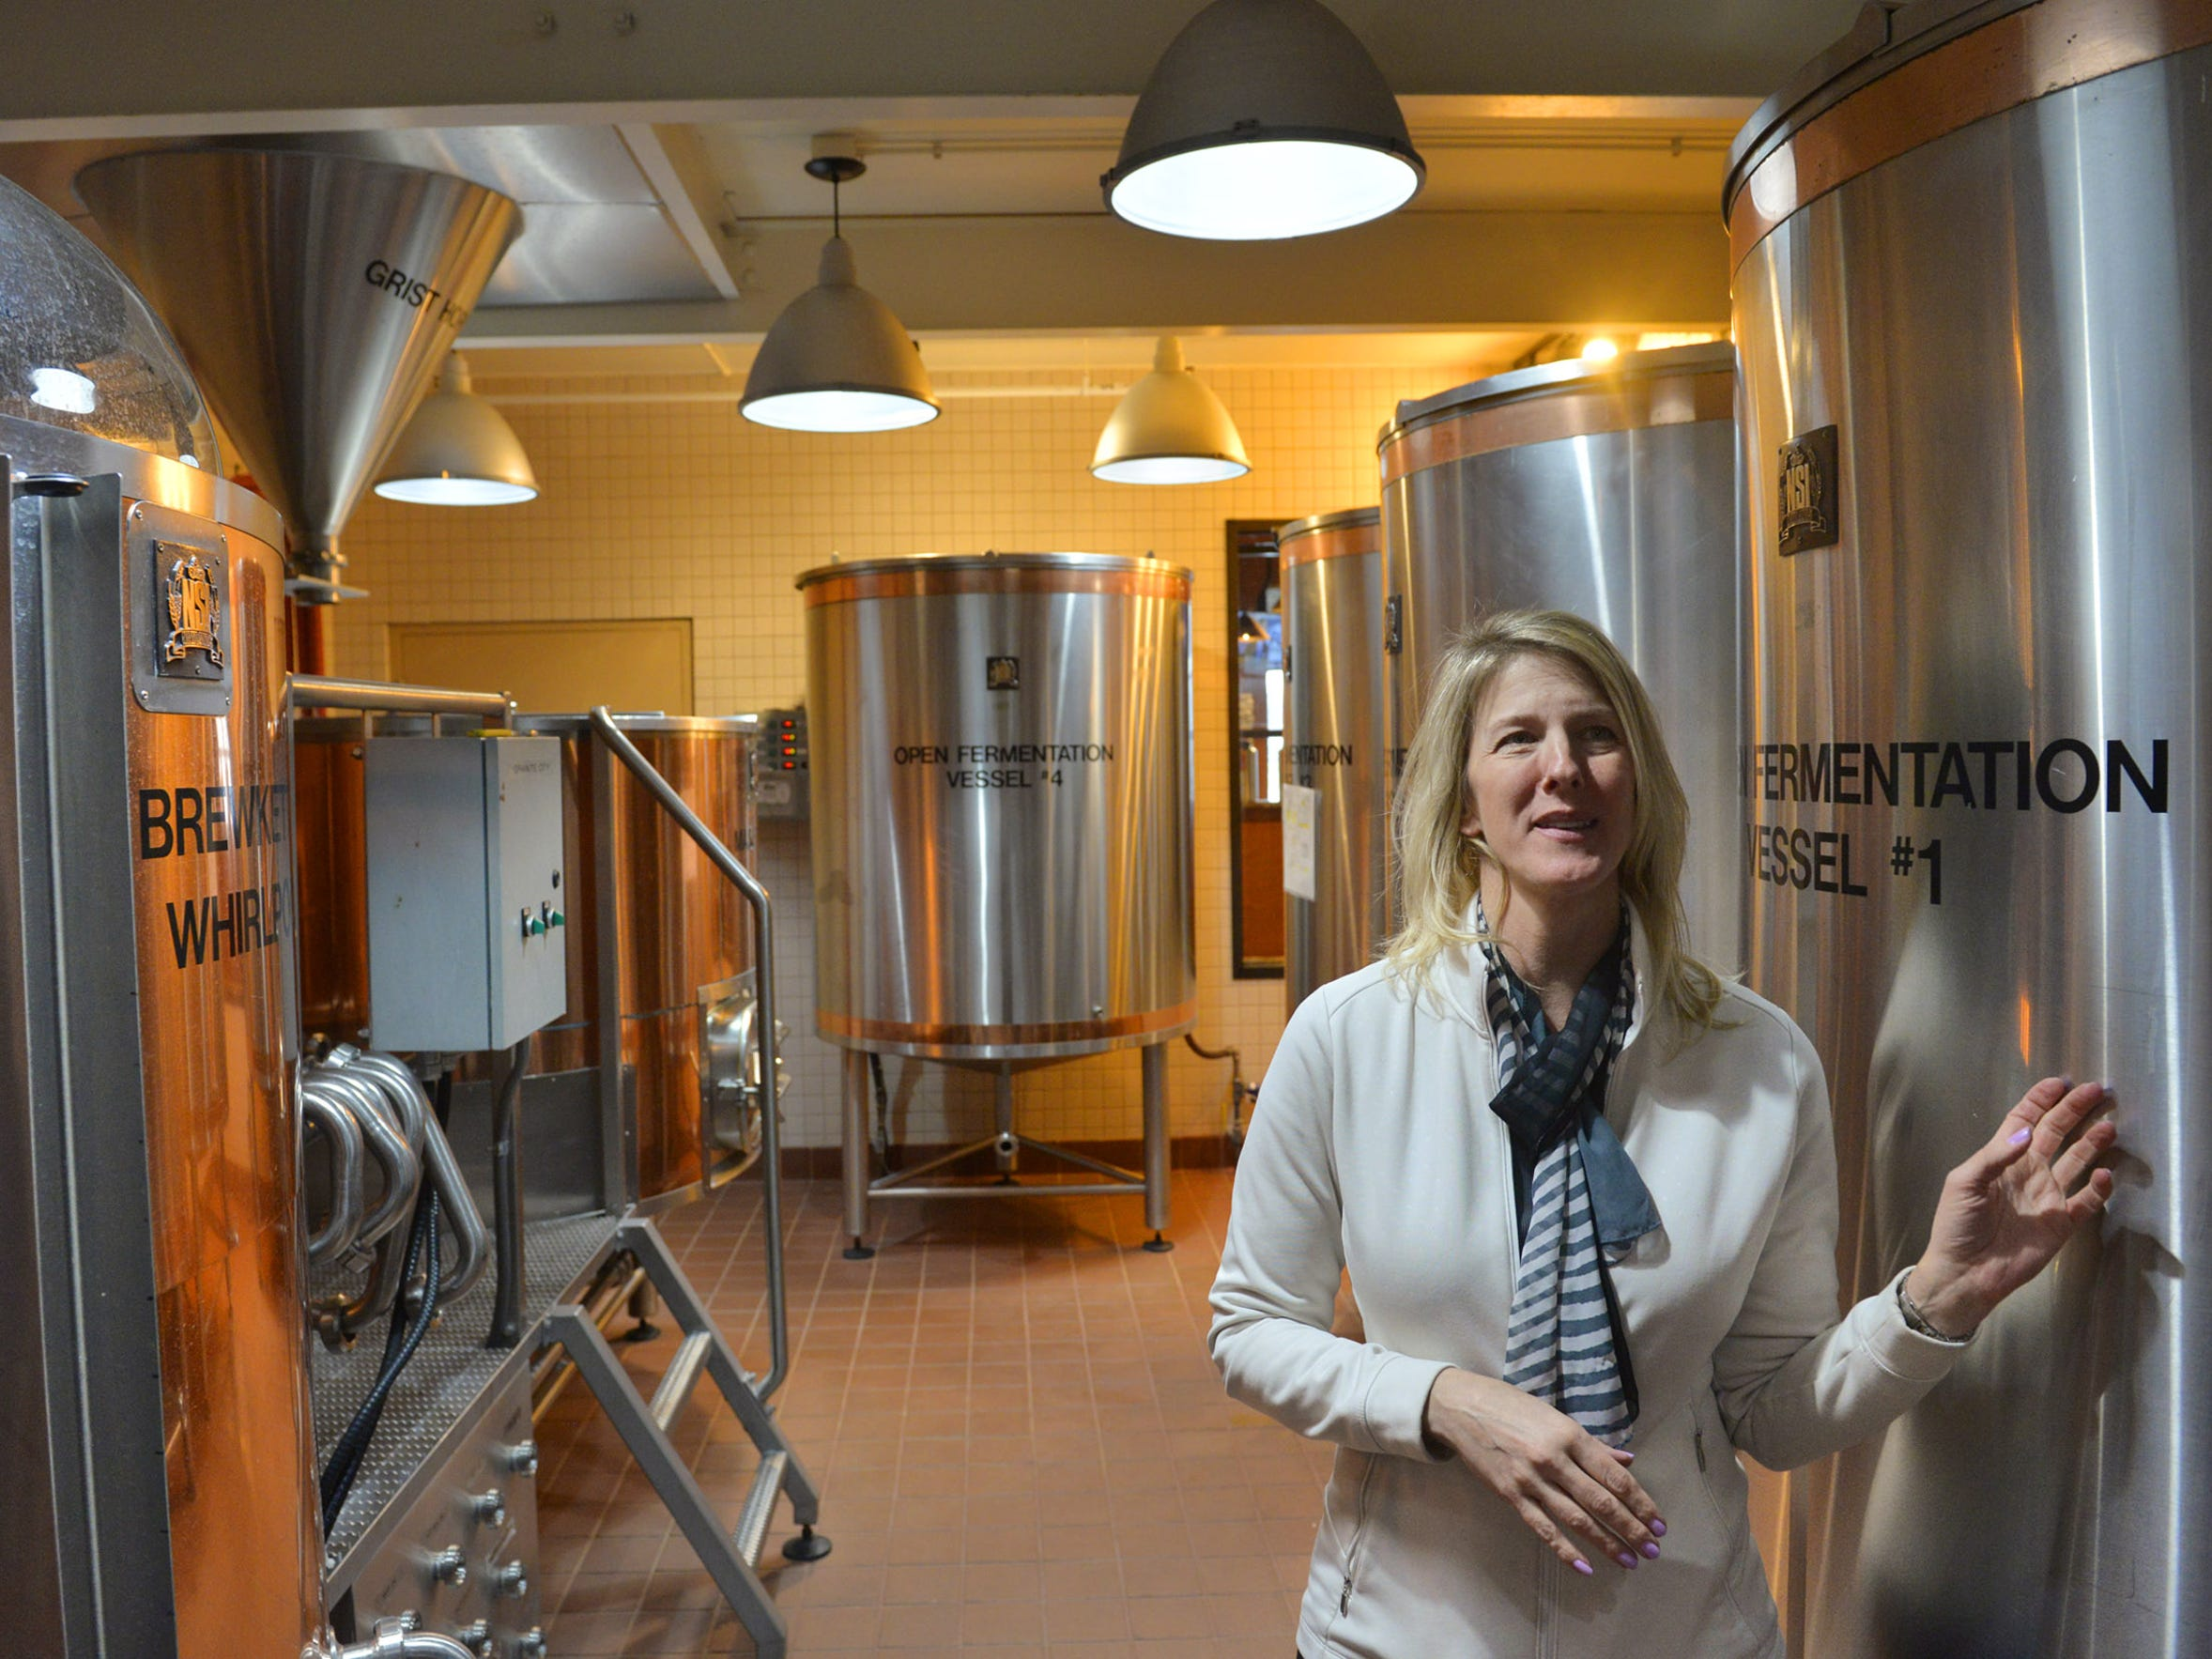 Granite City Food & Brewery General Manager Denise